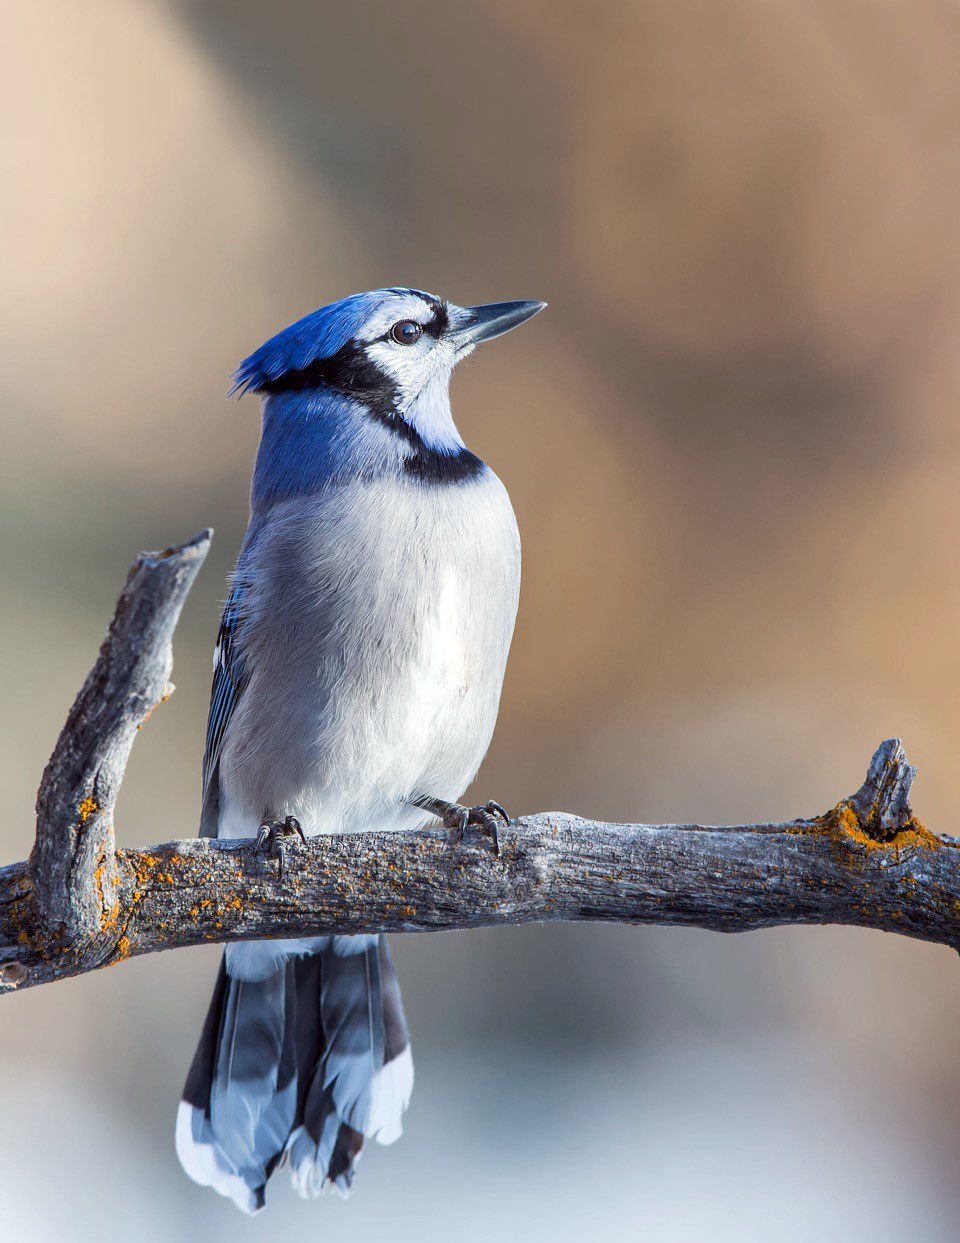 Blue Jay sighting a happy surprise at Teller Refuge